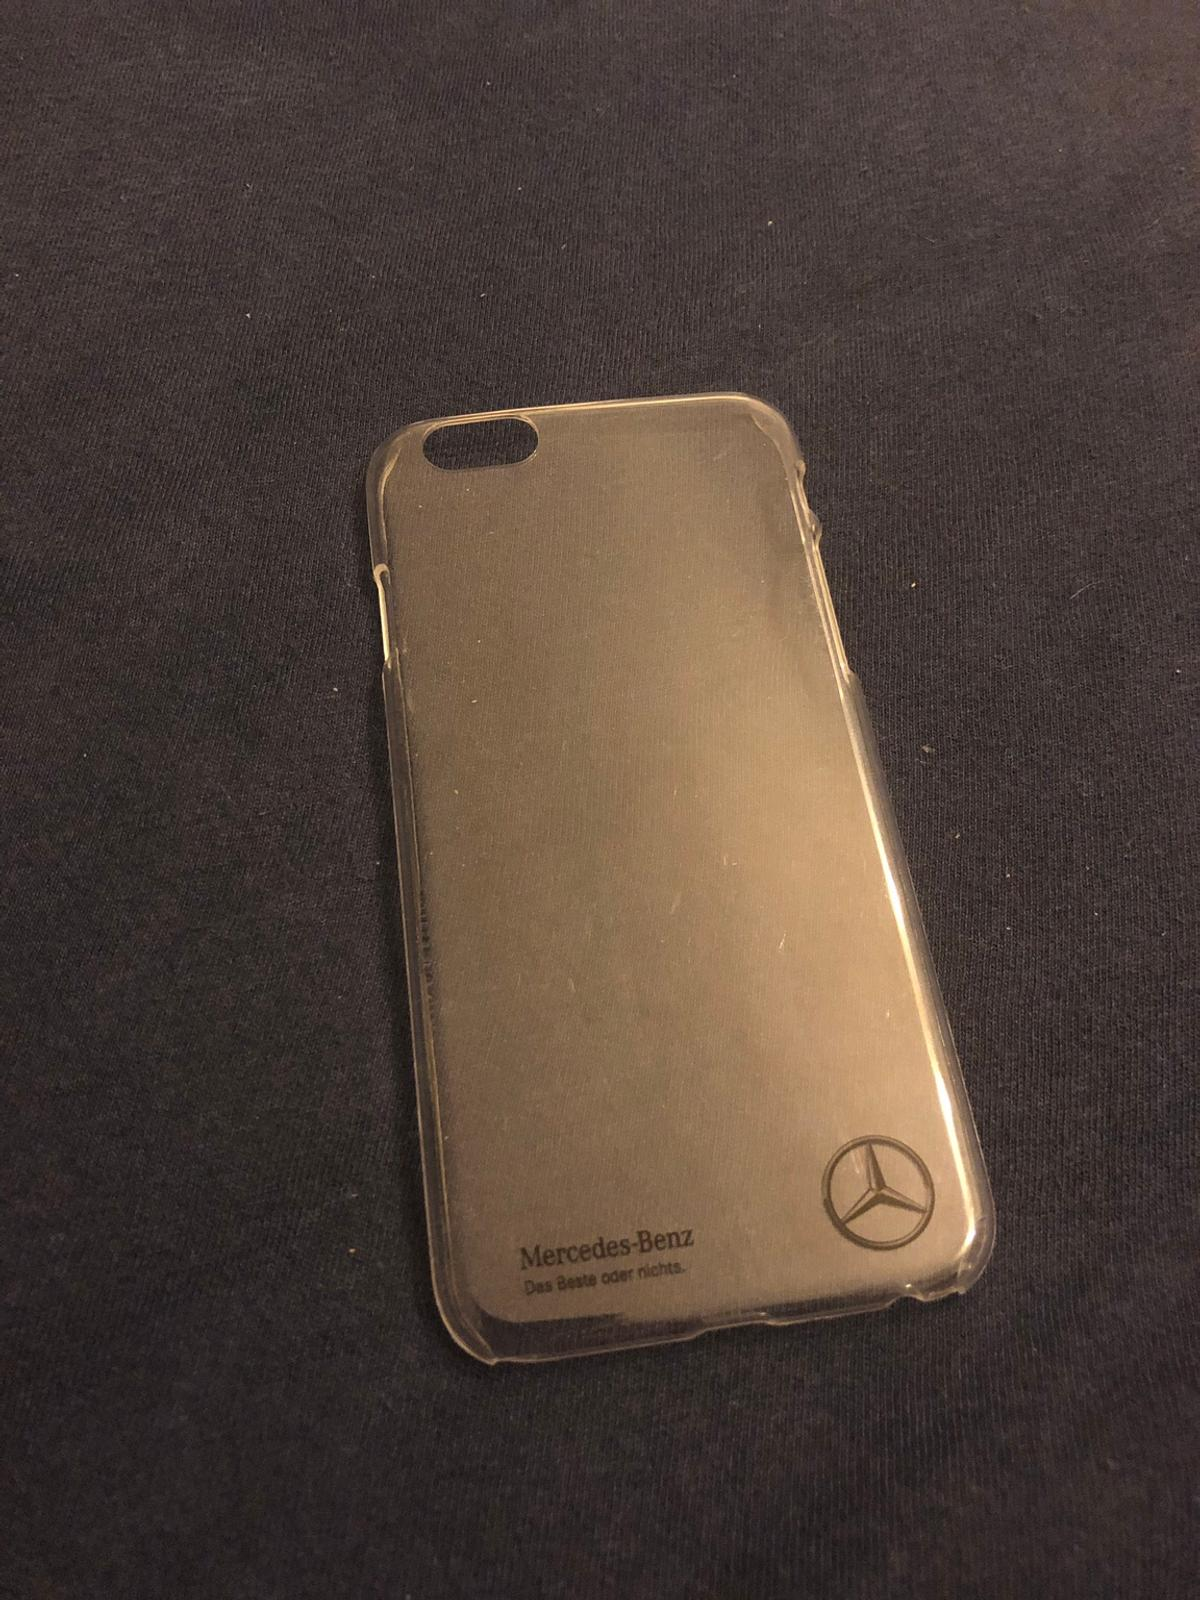 Iphone 6 6 S Hülle Mercedes Benz In 73230 Kirchheim Unter Teck For 10 00 For Sale Shpock